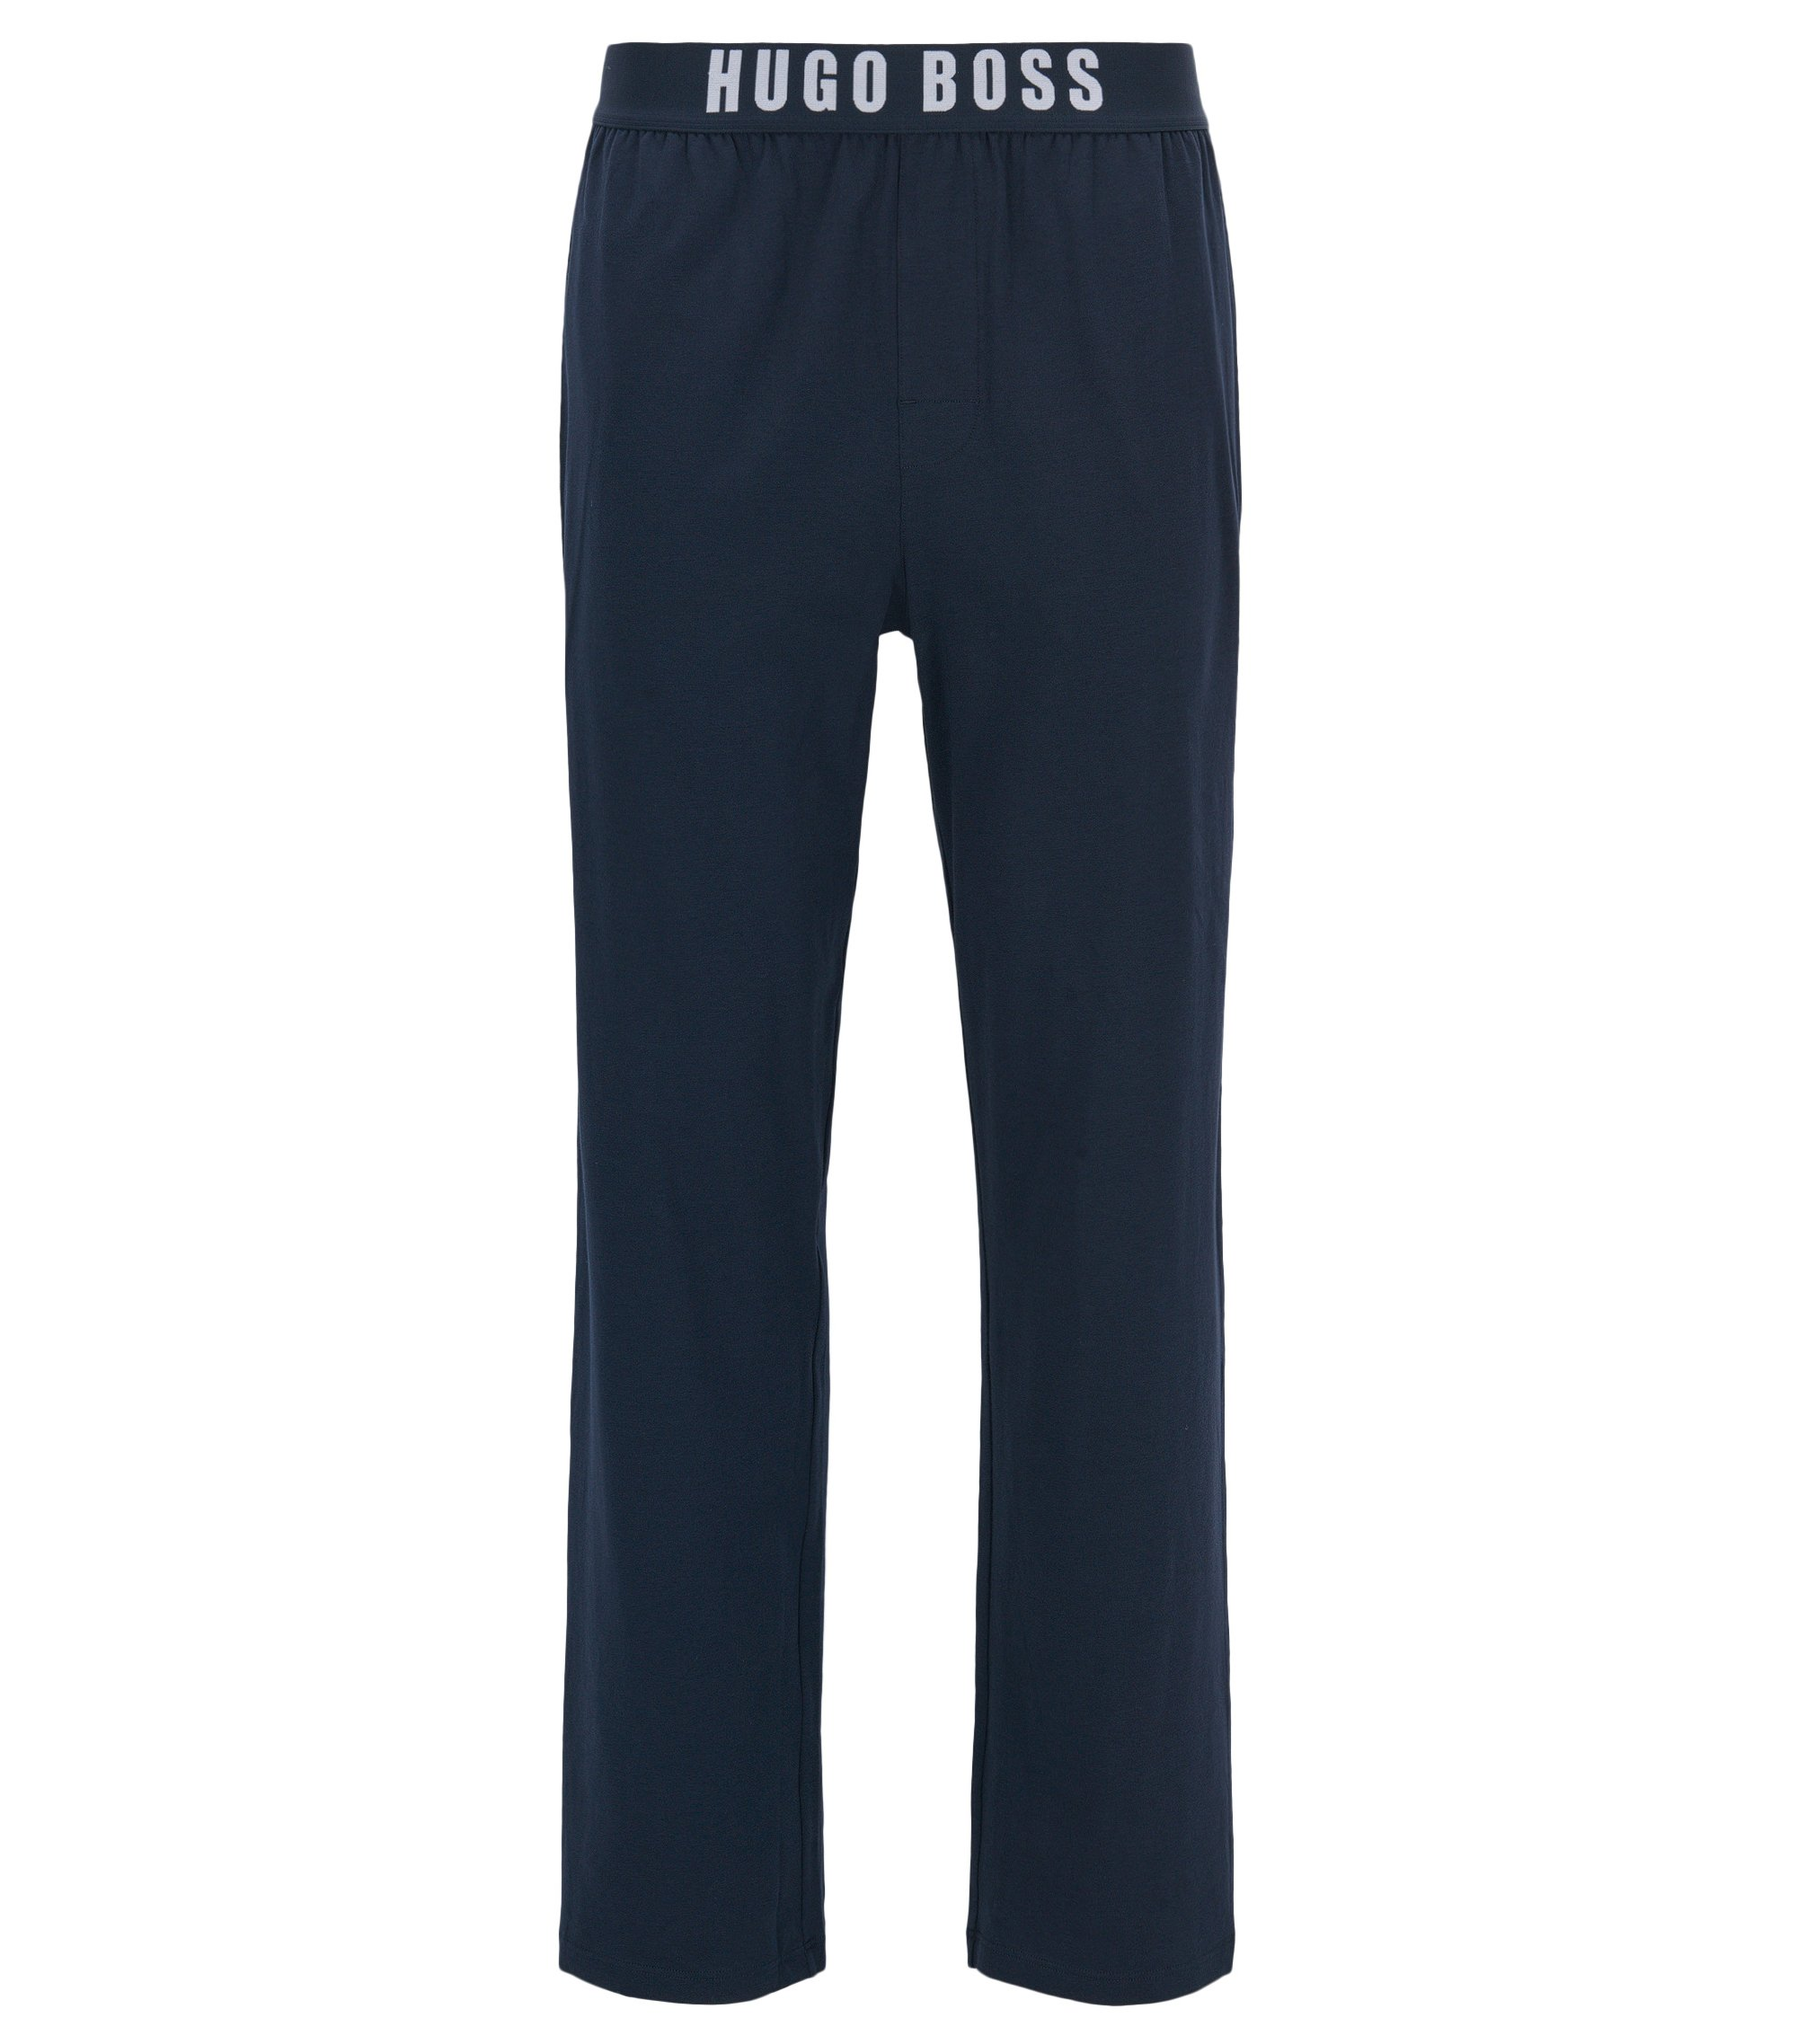 Pyjama trousers in stretch cotton jersey, Dark Blue